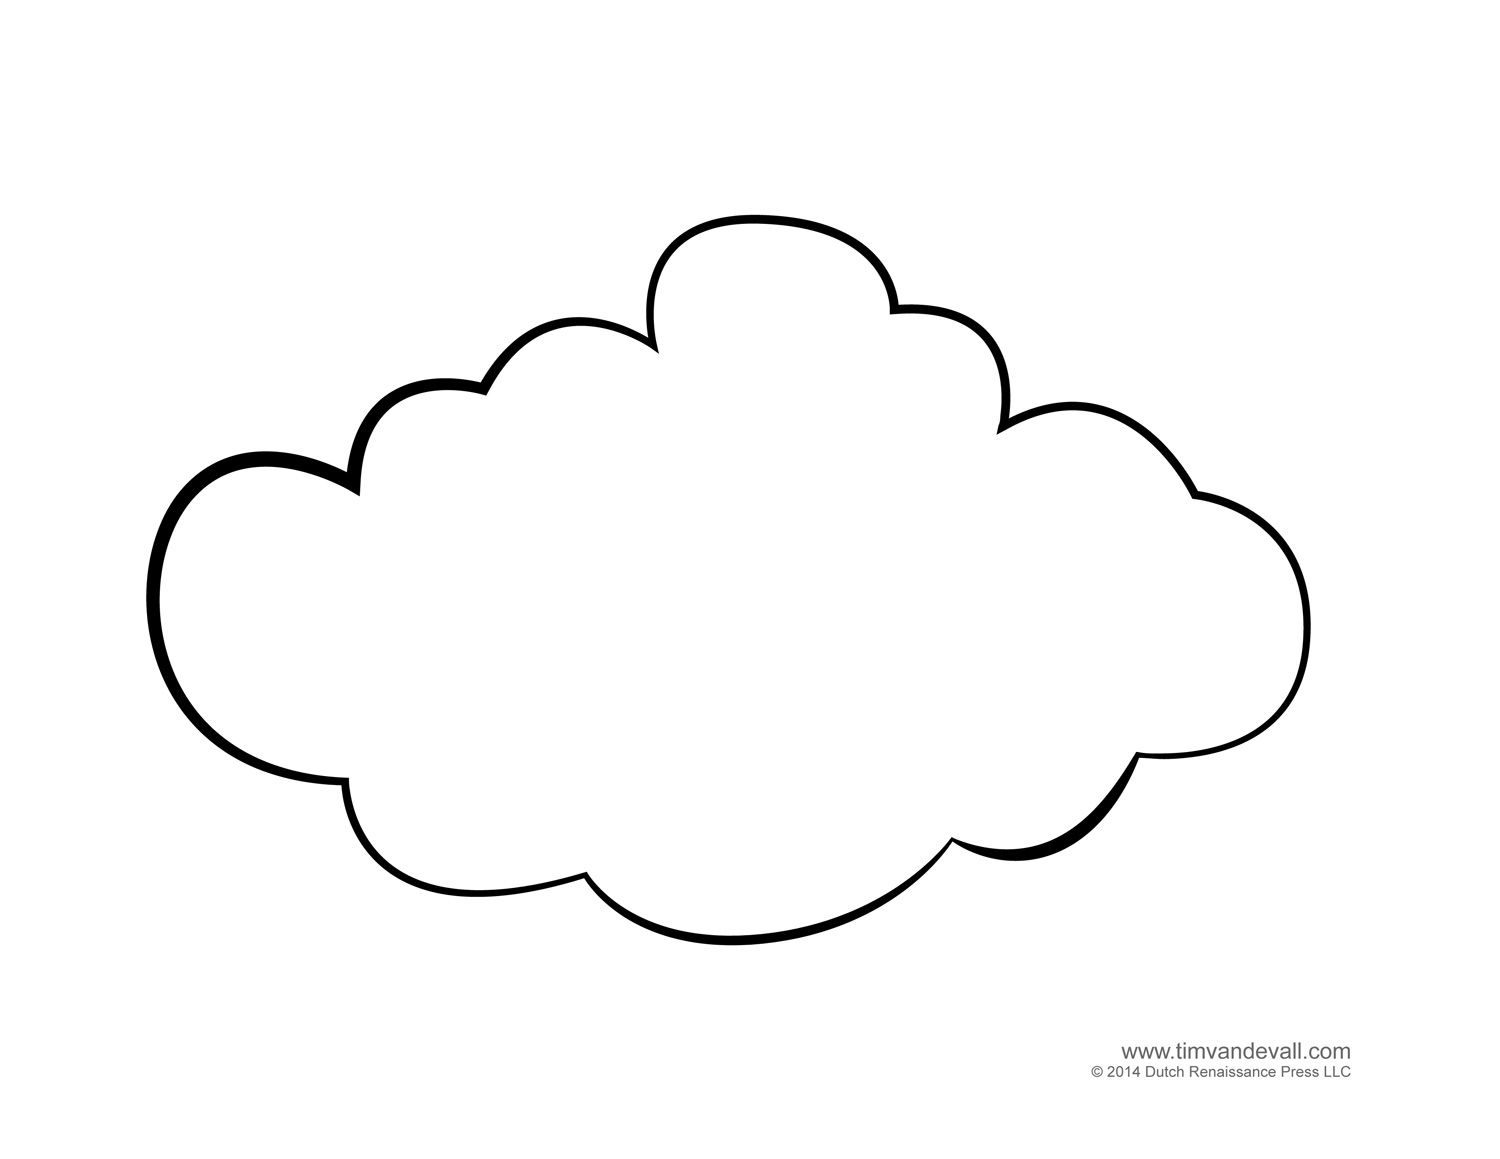 Ghayn غ Ghayma Cloud غيمة Coloring Pages Coloring Pages